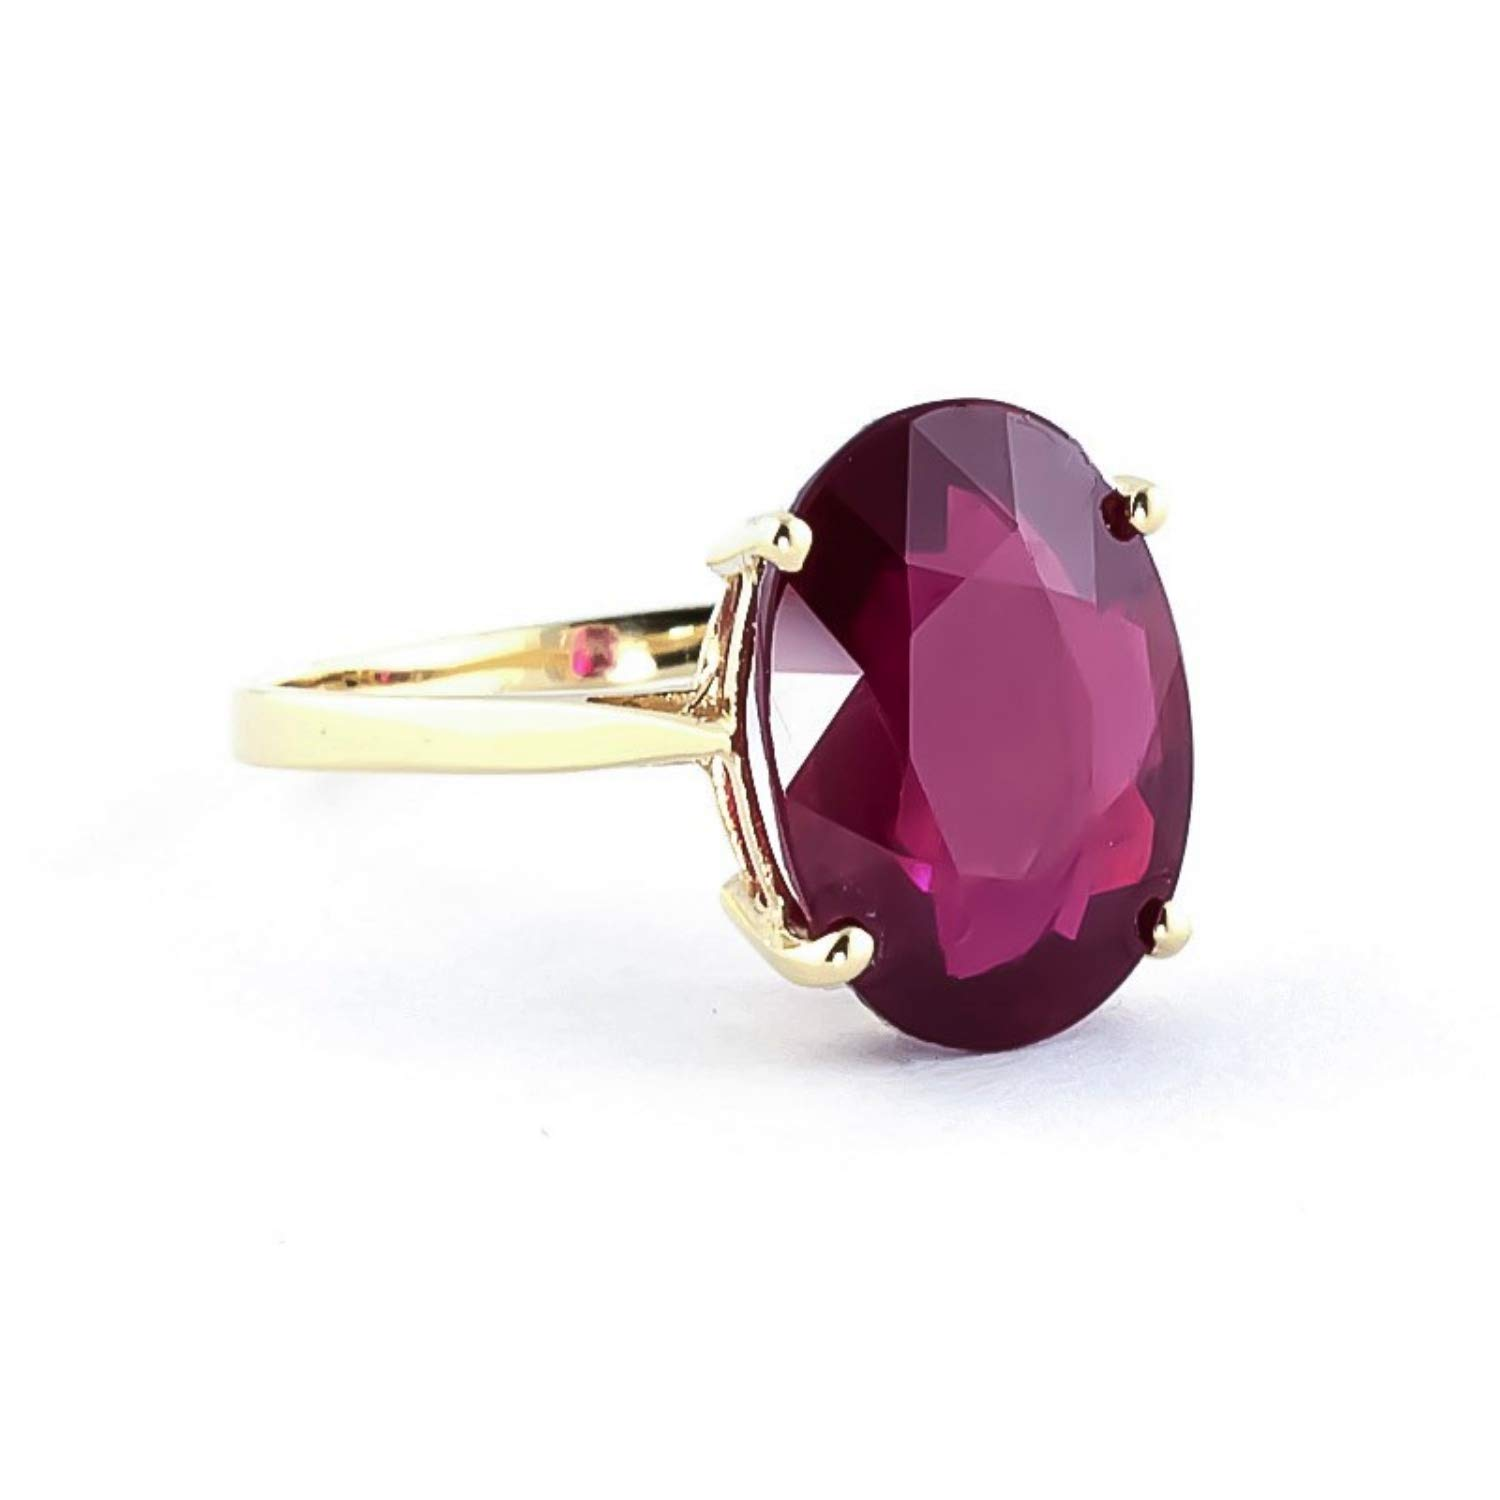 Galaxy Gold 7.5 Carat 14k Solid Gold Ring with Natural Oval-Shaped Ruby (7.5)